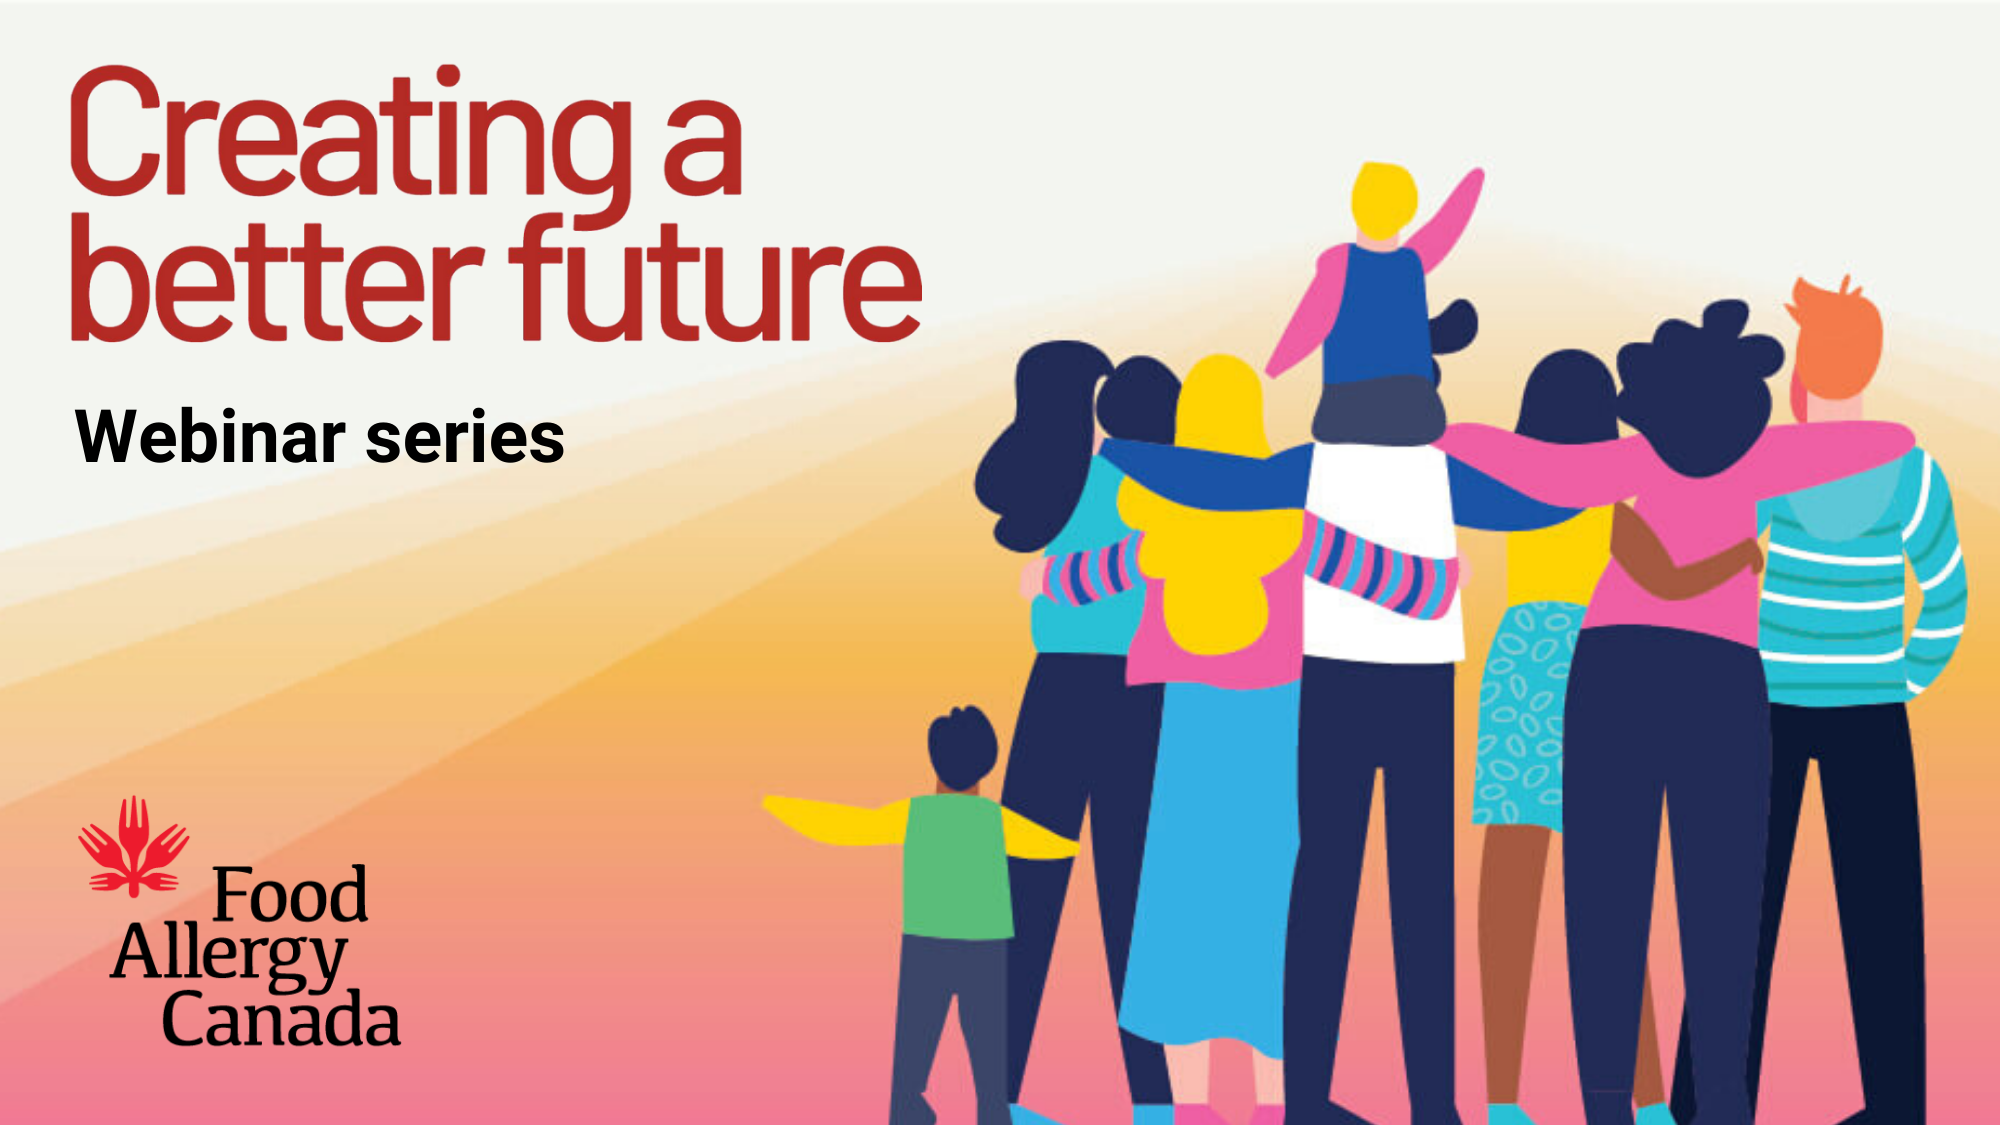 Creating a better future webinar series